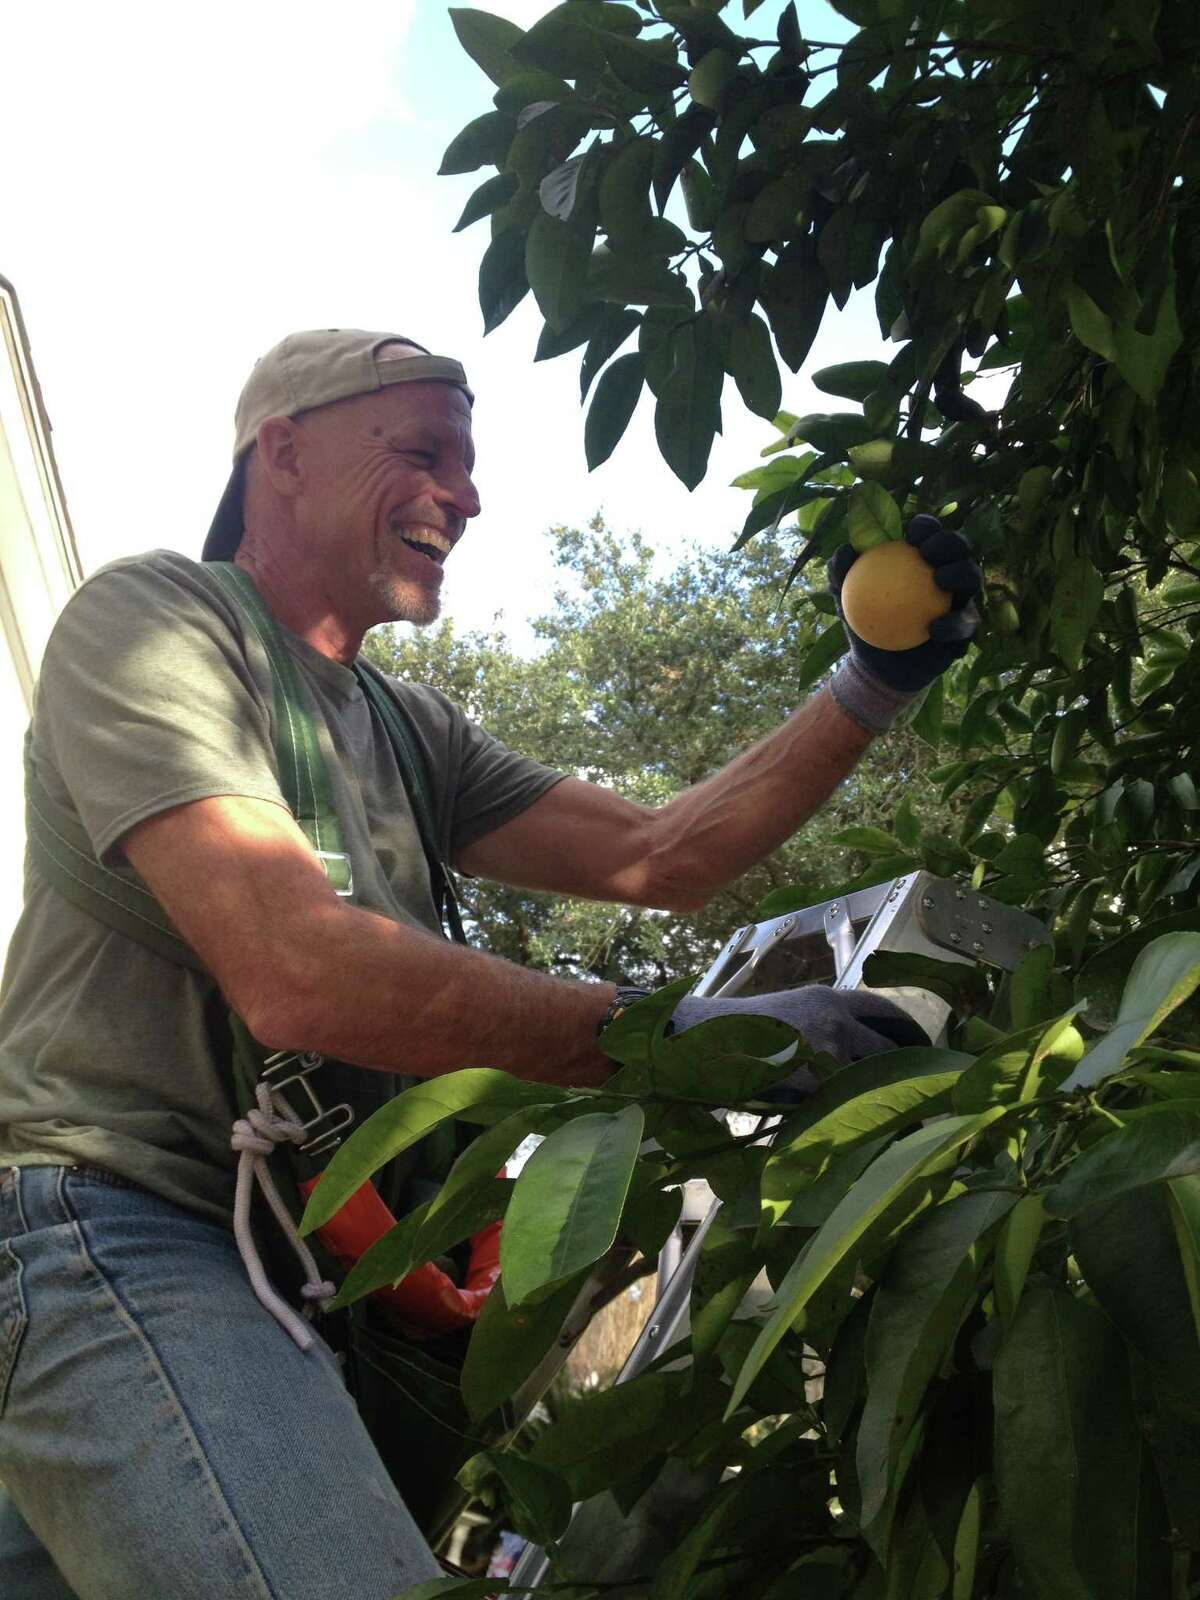 Kent Keith is the co-founder of FruitShare Houston, which harvests unwanted fruit and donates it to places like the Houston Food Bank.